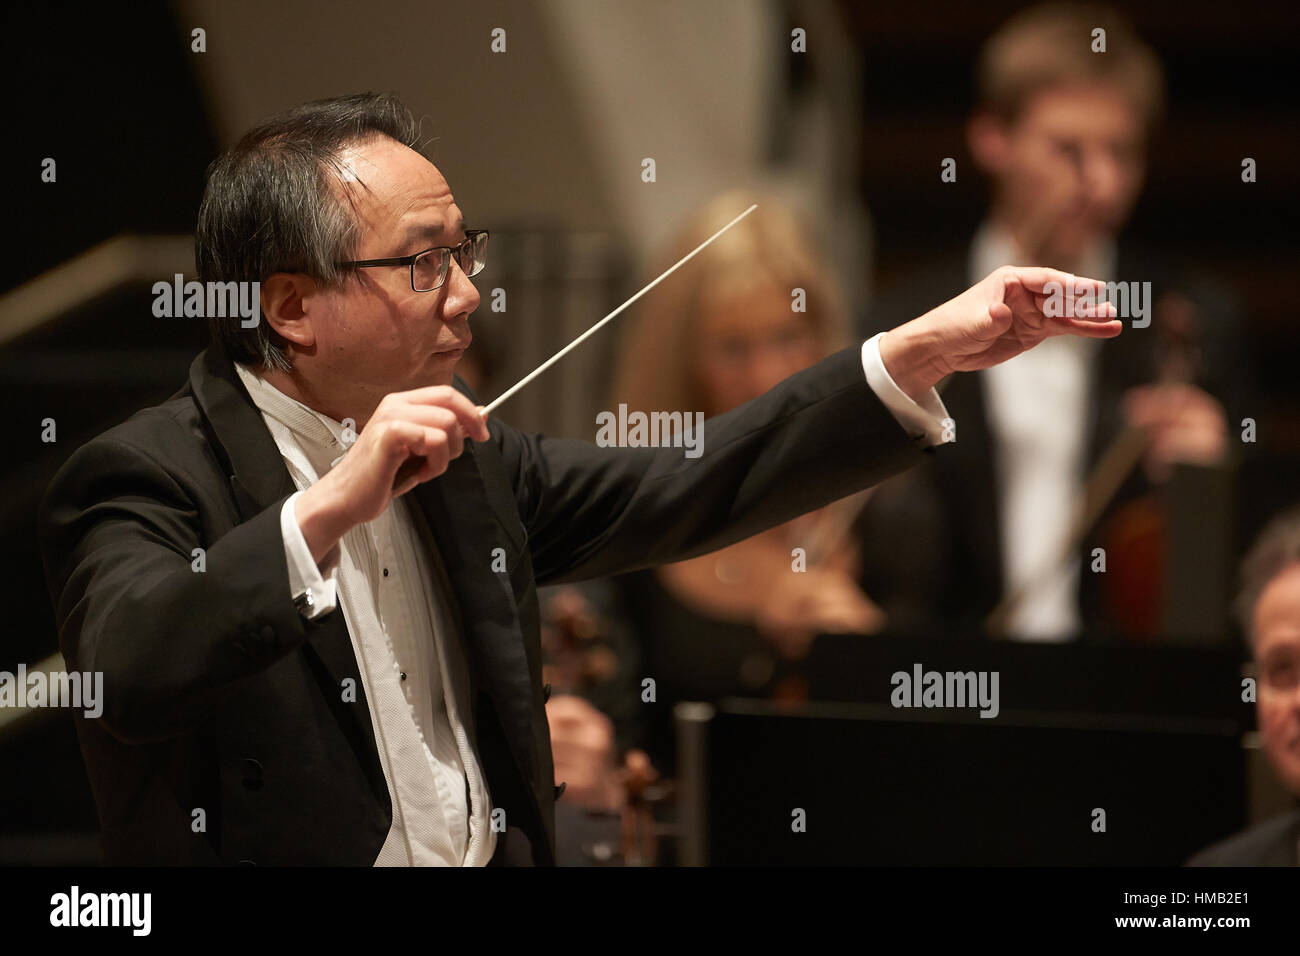 Conductor Shao-Chia Lü conducting at concert, Rhein-Mosel-Halle, Koblenz, Rhineland-Palatinate, Germany - Stock Image